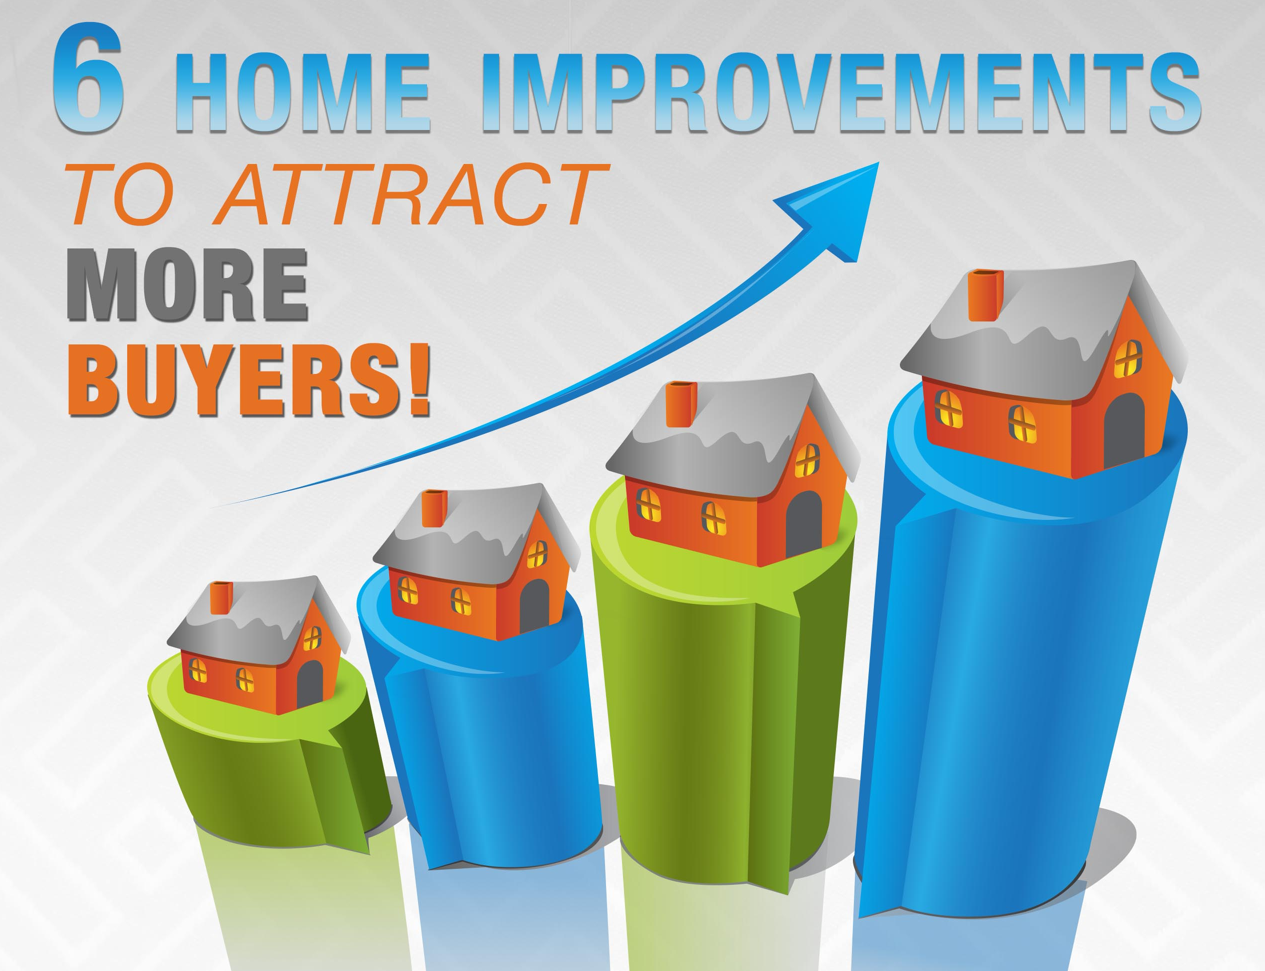 Home Improvements that attract buyers